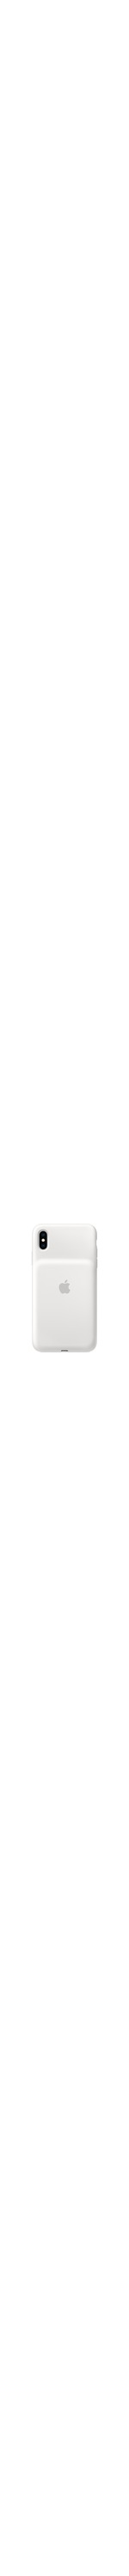 Apple Case for Apple iPhone XS Max Smartphone - Elastomer Hinge - White